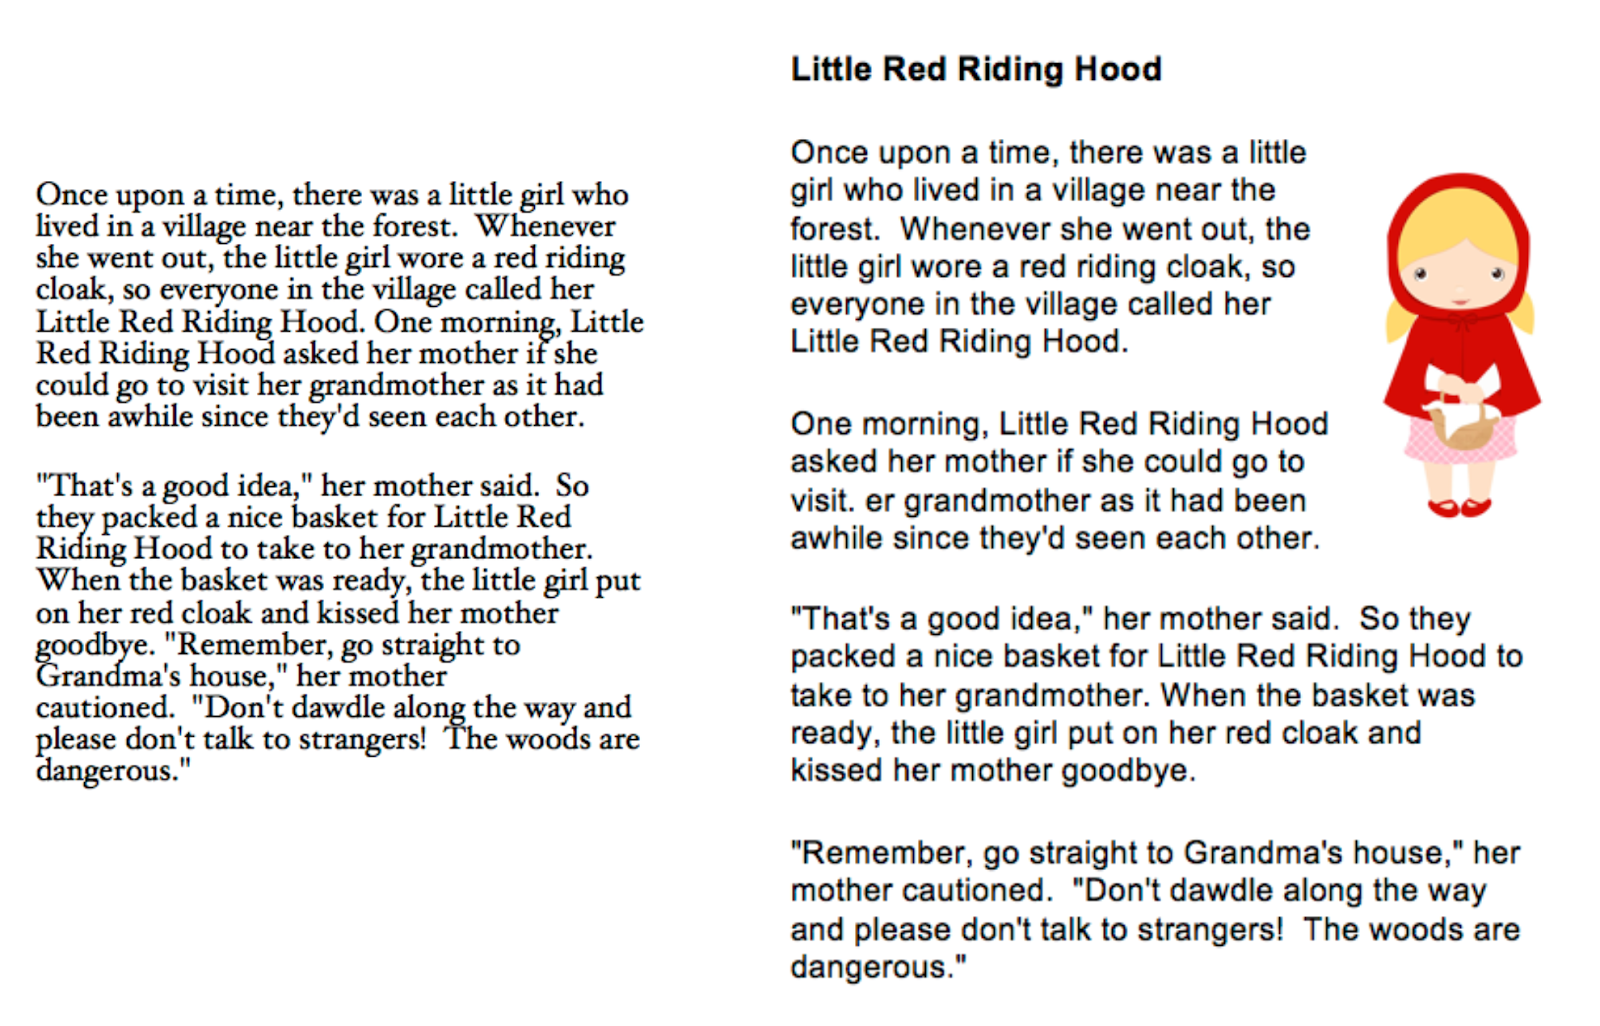 Little Red Riding Hood example